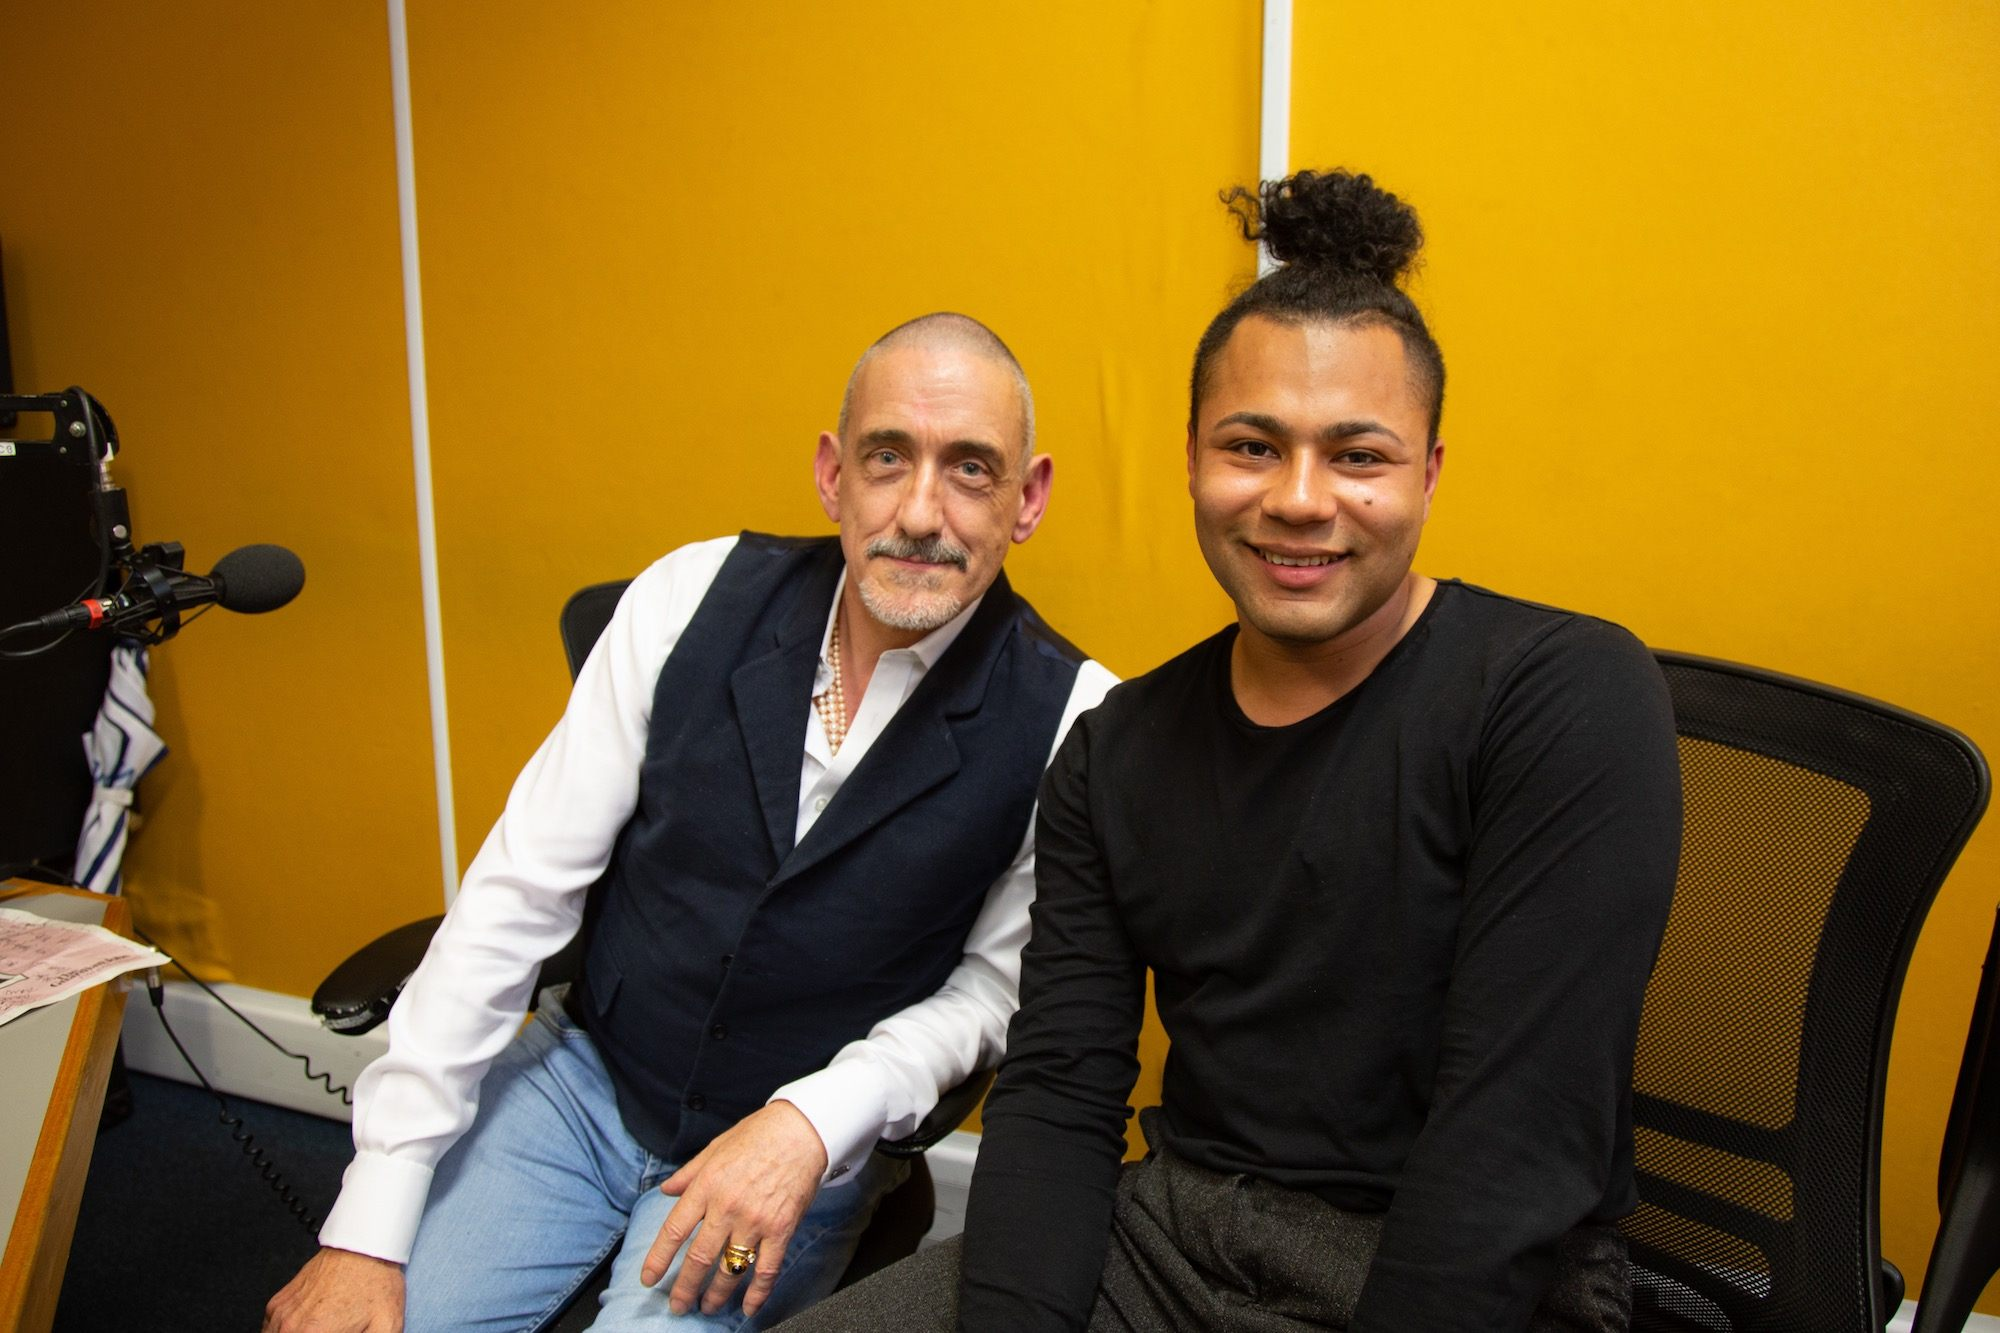 Travis Alabanza and Neil Bartlett sit beside each other in a radio recording studio